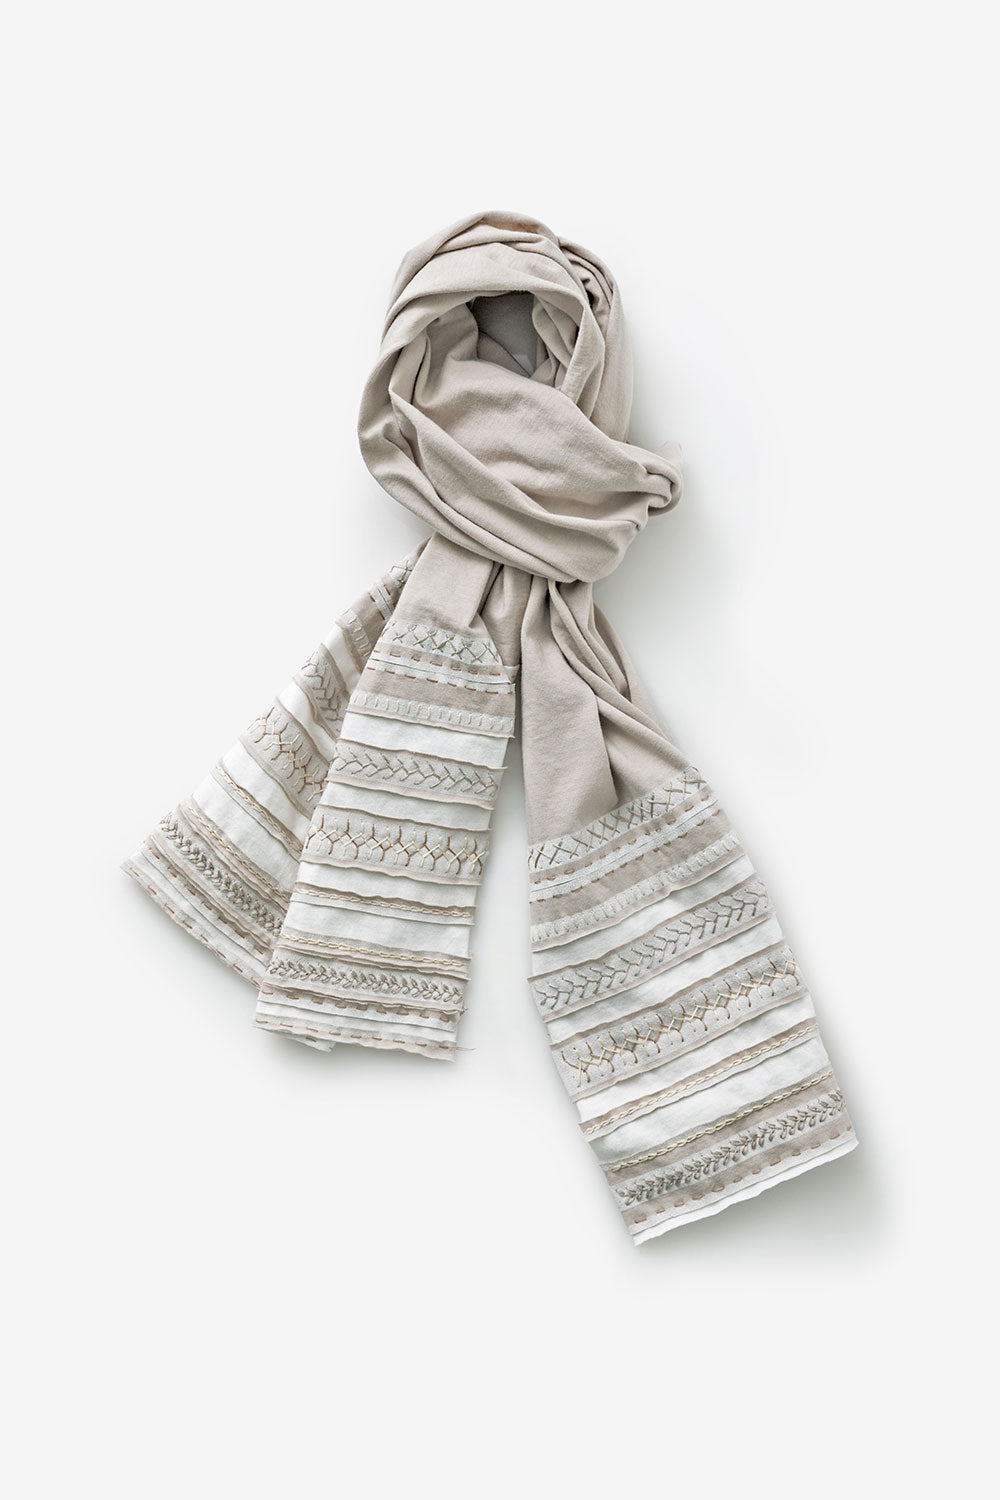 The School of Making One-Day Embroidery Workshop Hand-Sewn Stripe Scarf Kit